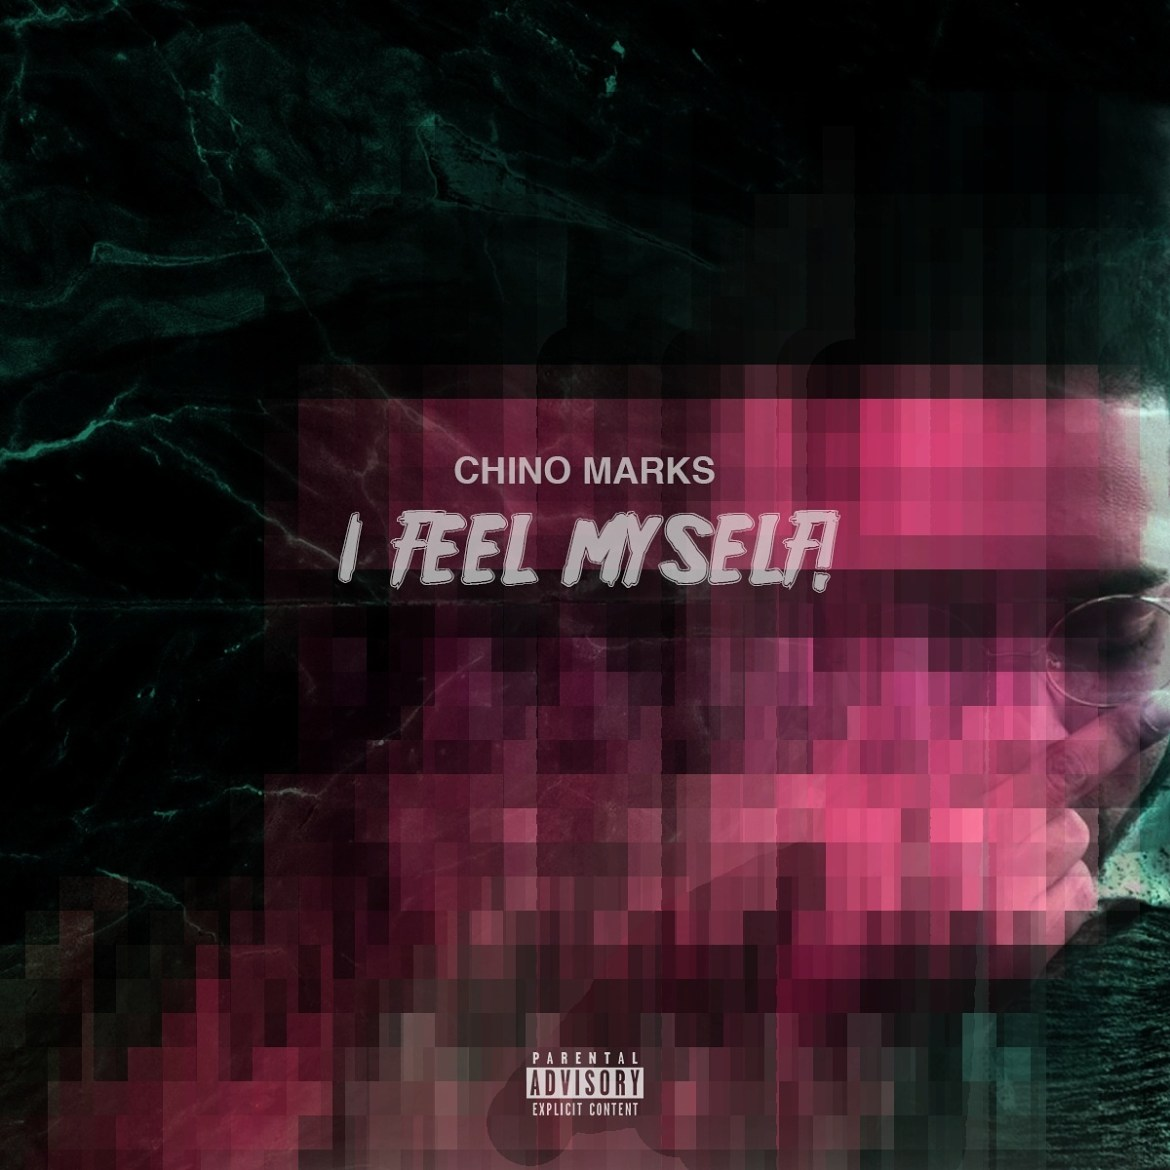 Chino Marks Brings Emotion to New Track I FEEL MYSELF!